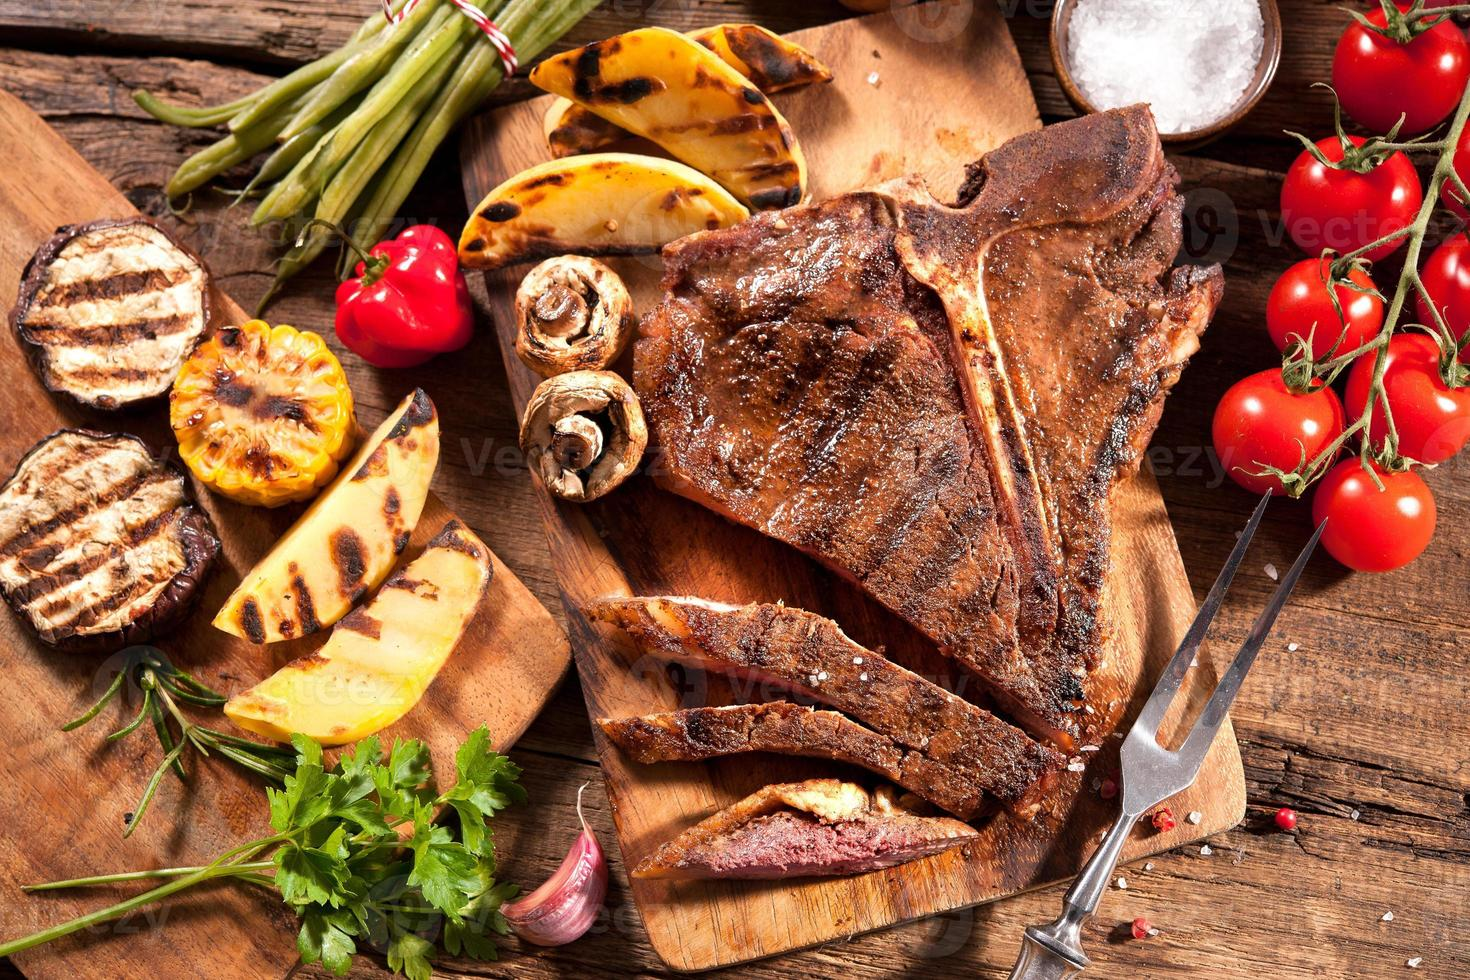 Beef steaks with grilled vegetables photo